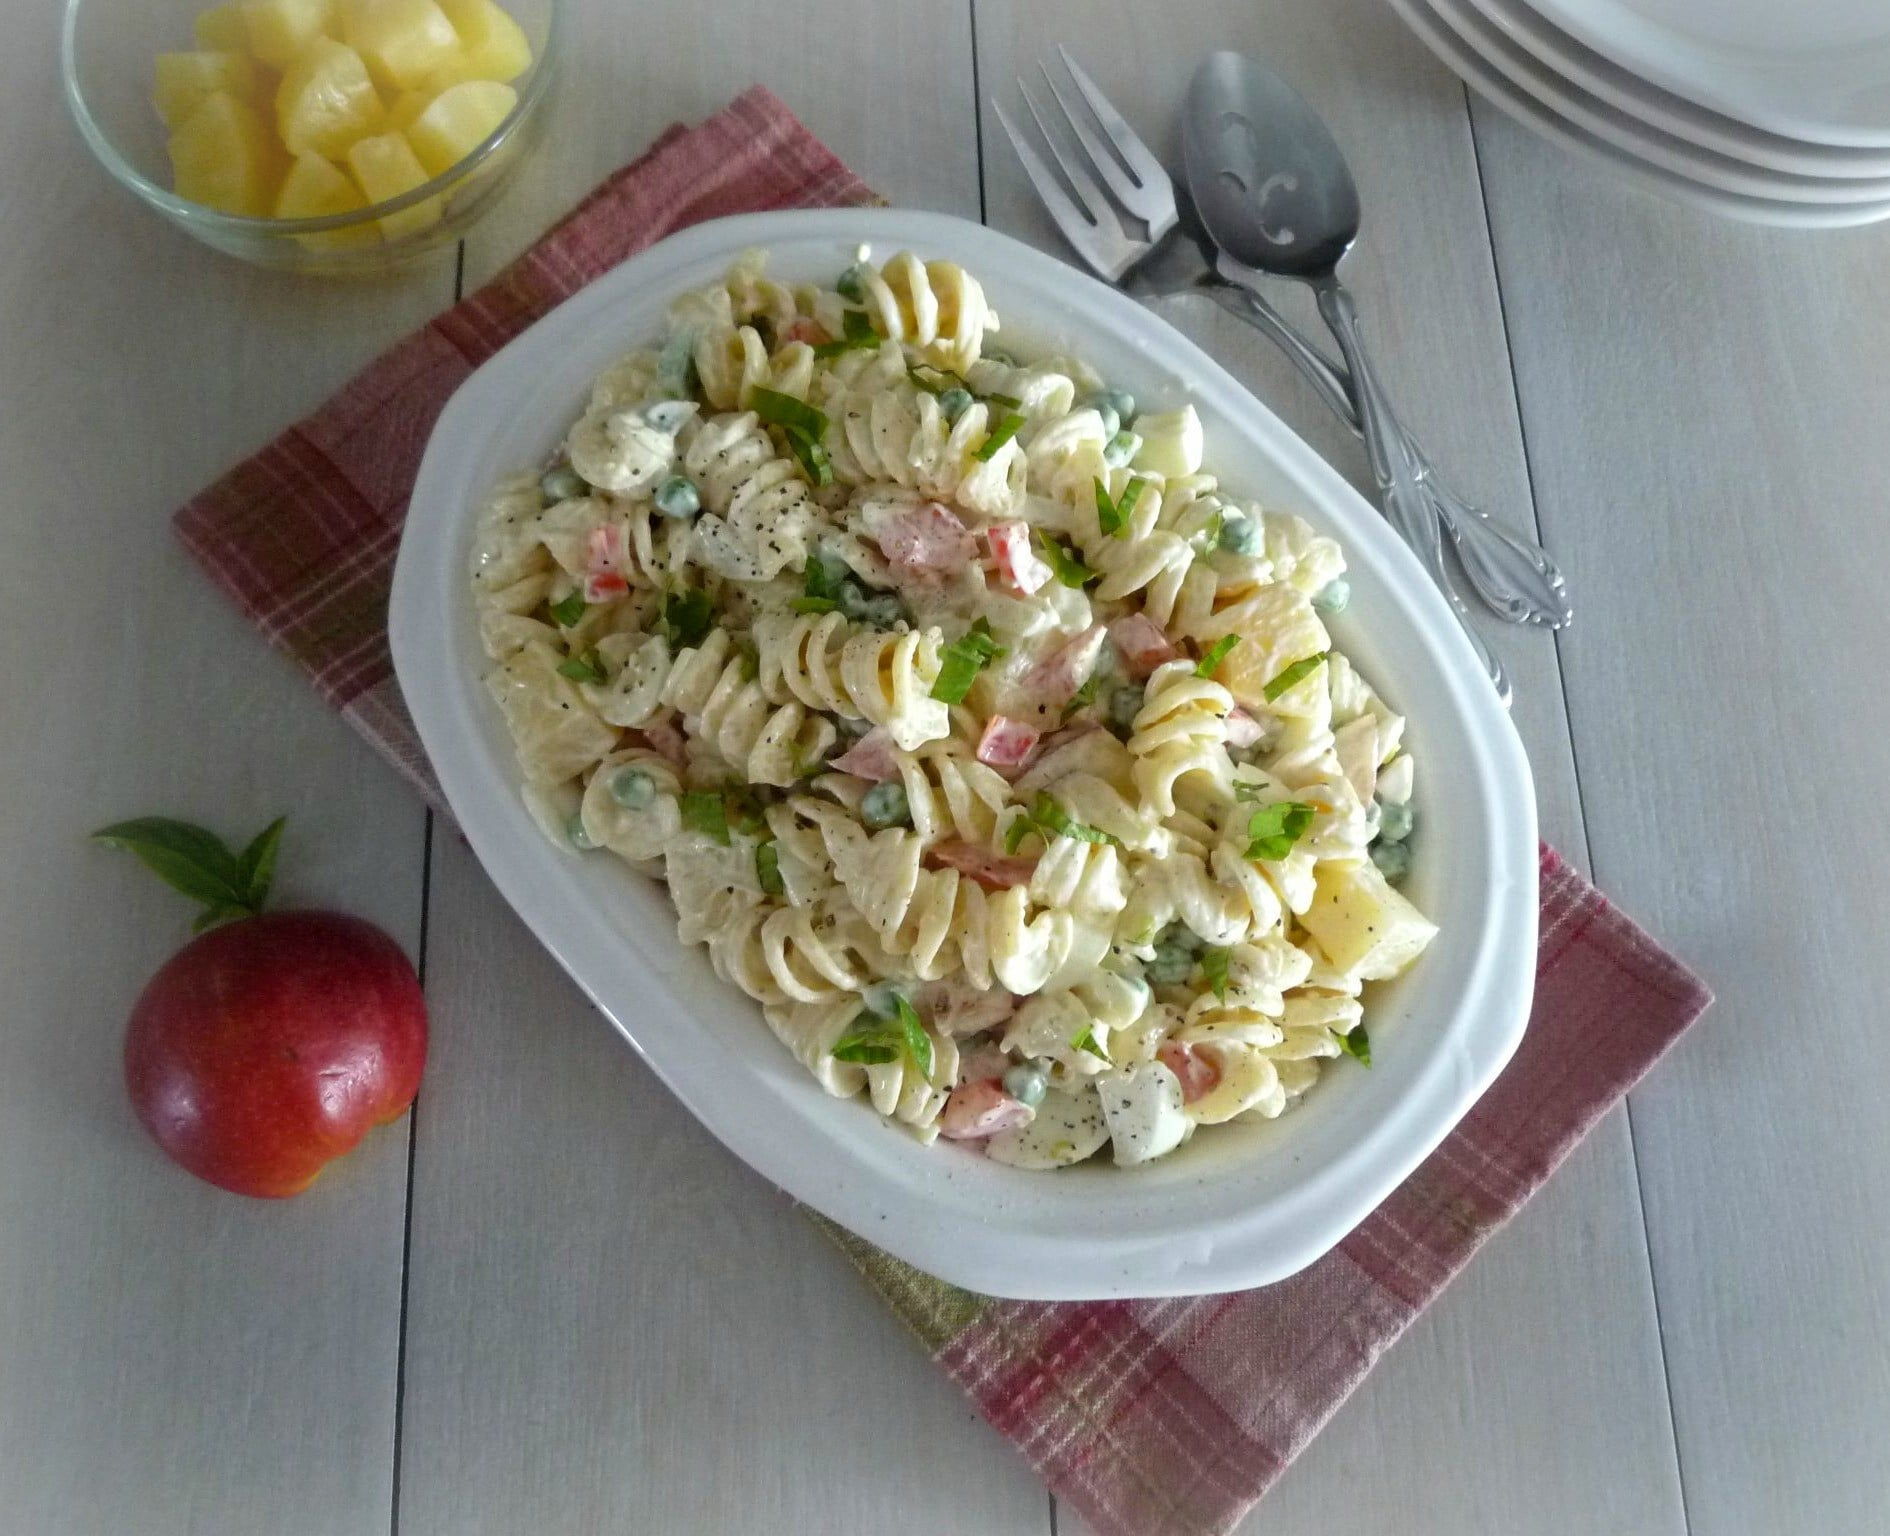 #Macaroni #Salad with #Fruit